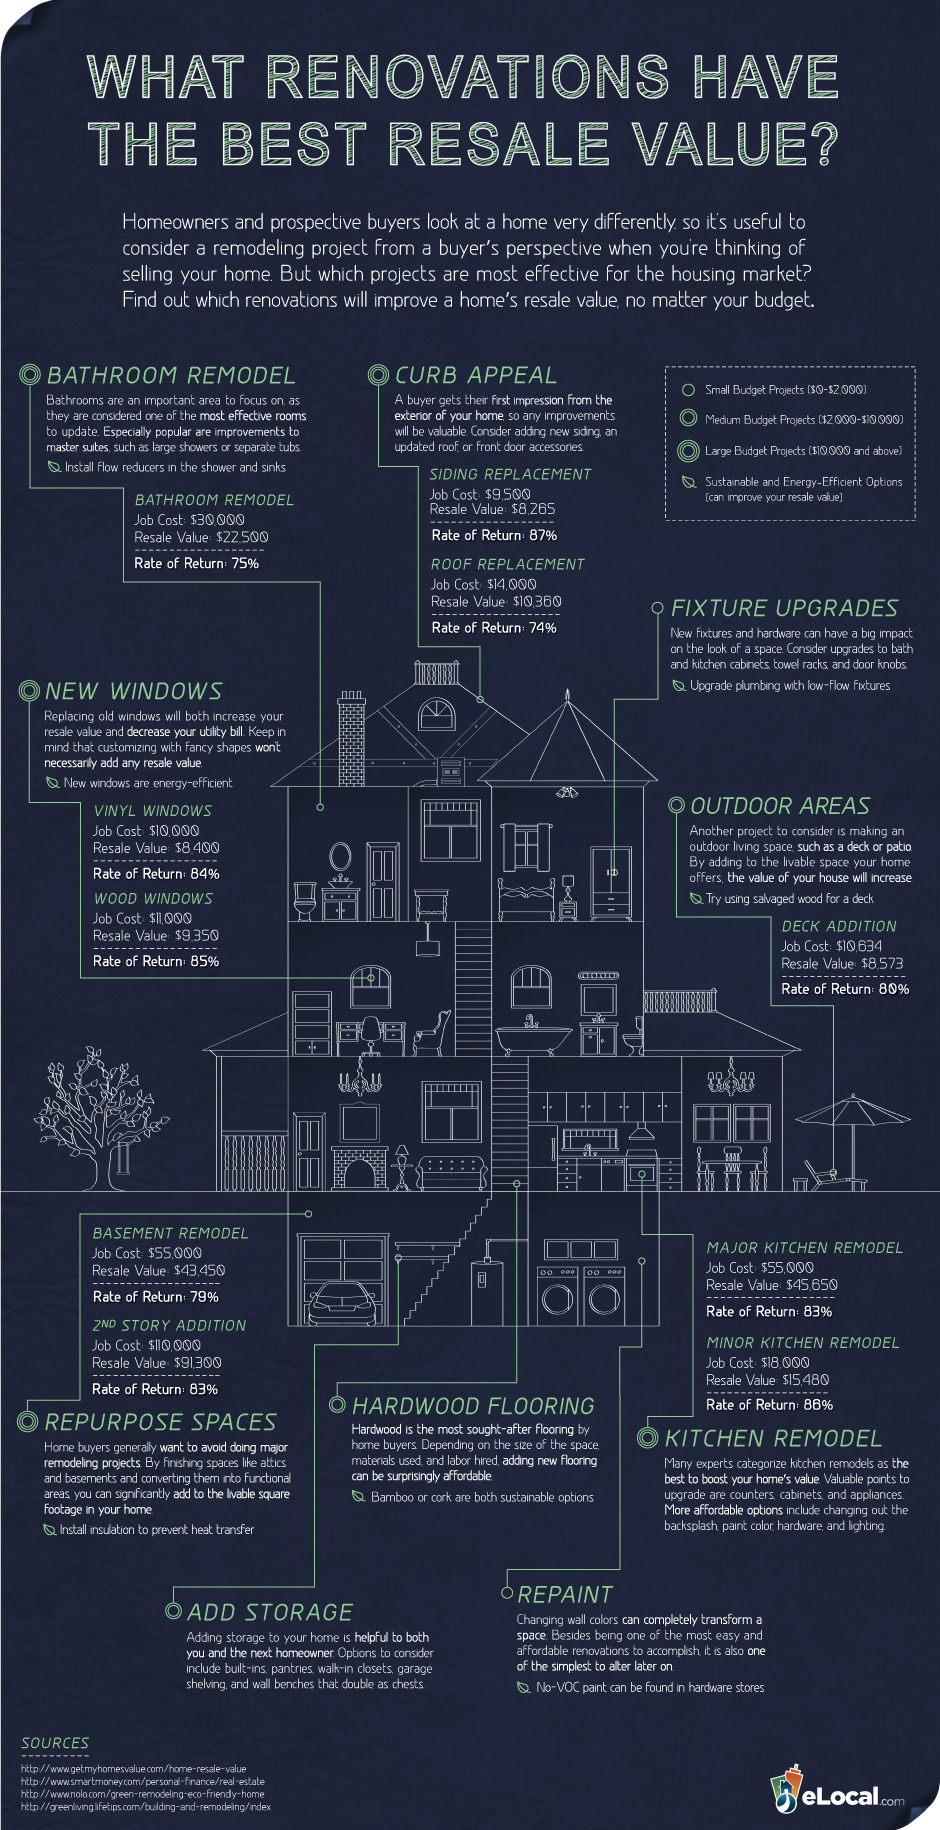 [Infographic] What Renovations Have The Best Resale Value?